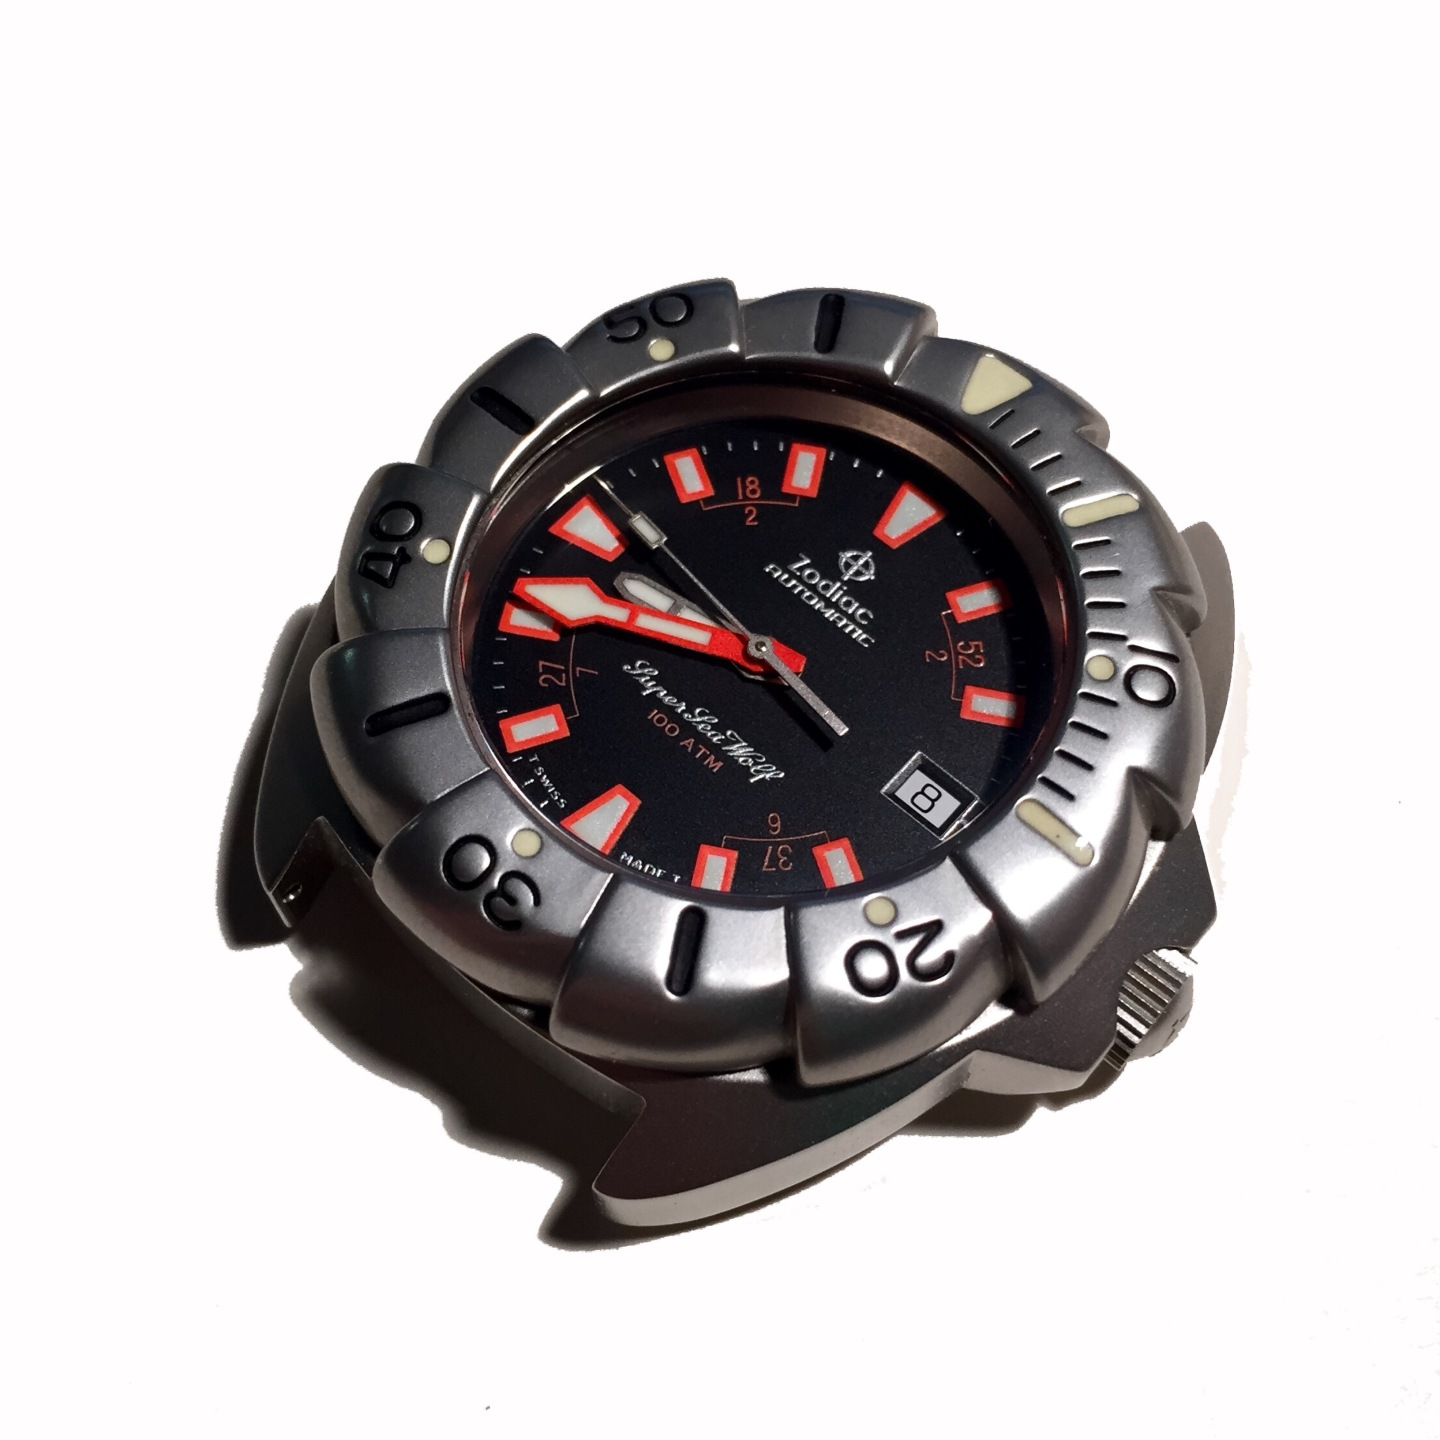 zodiac slide the s pilot jetomatic review watch gear patrol watches